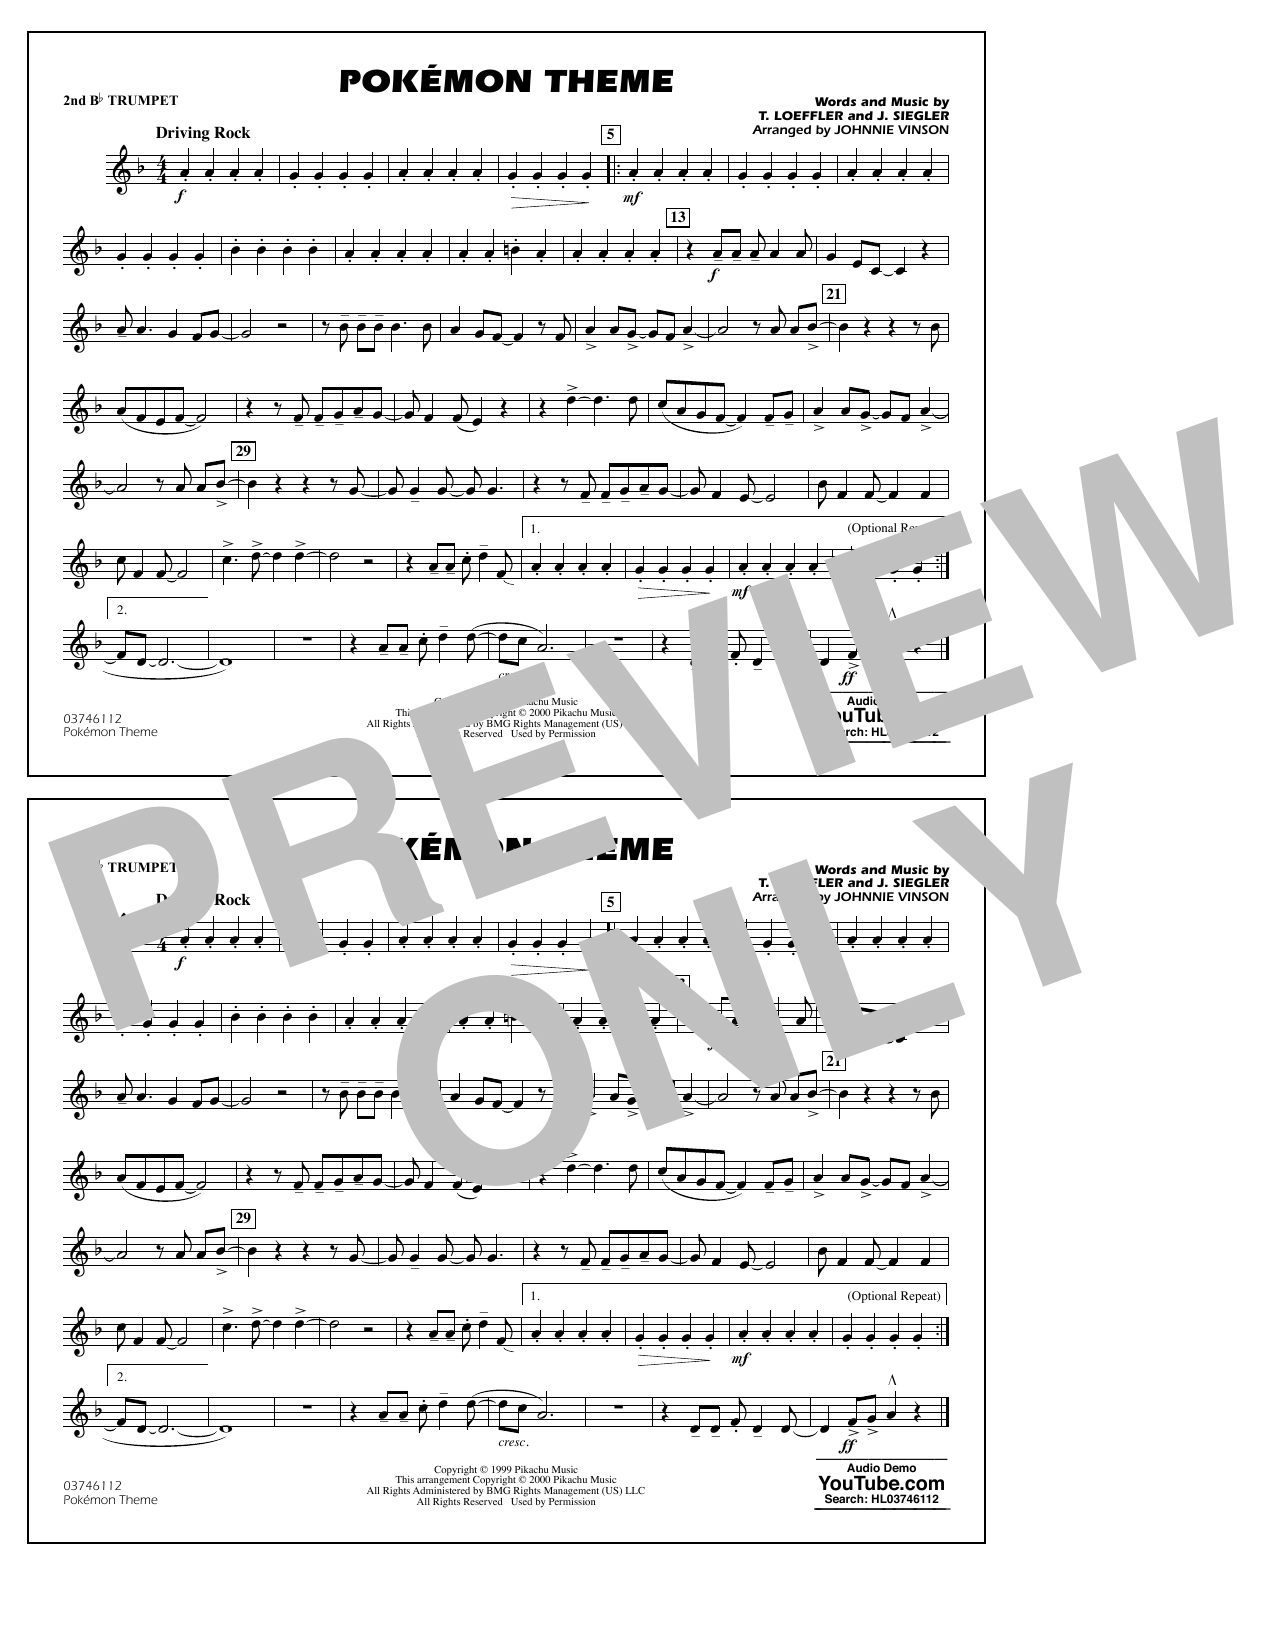 Pokémon Theme - 2nd Bb Trumpet Sheet Music